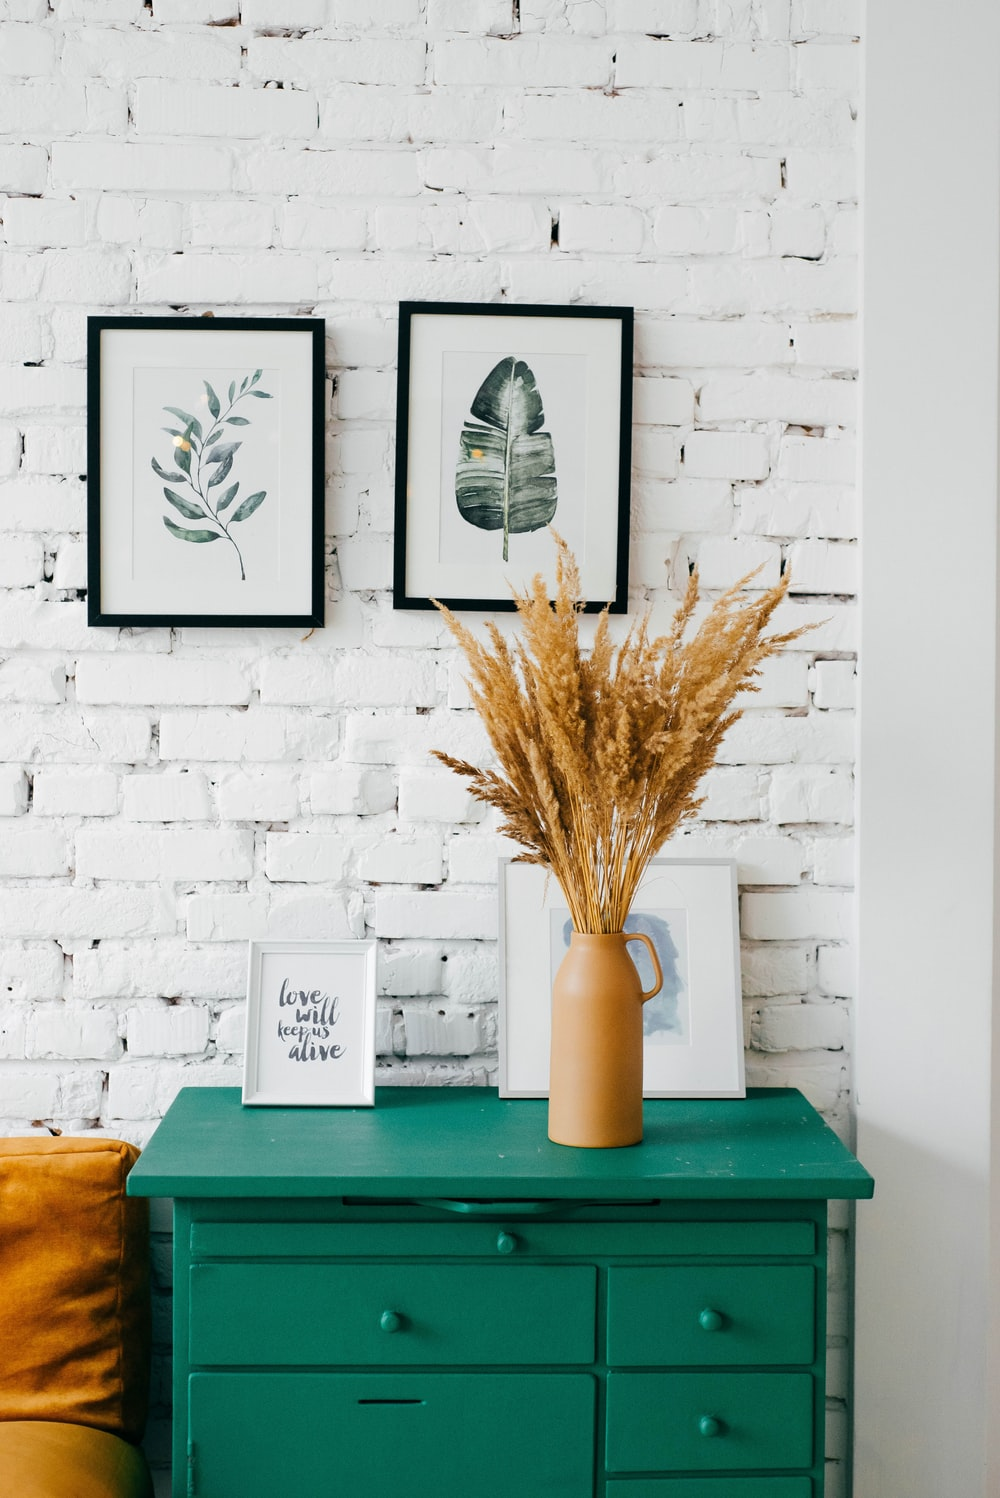 500 Home Decor Pictures Hd Download Free Images On Unsplash